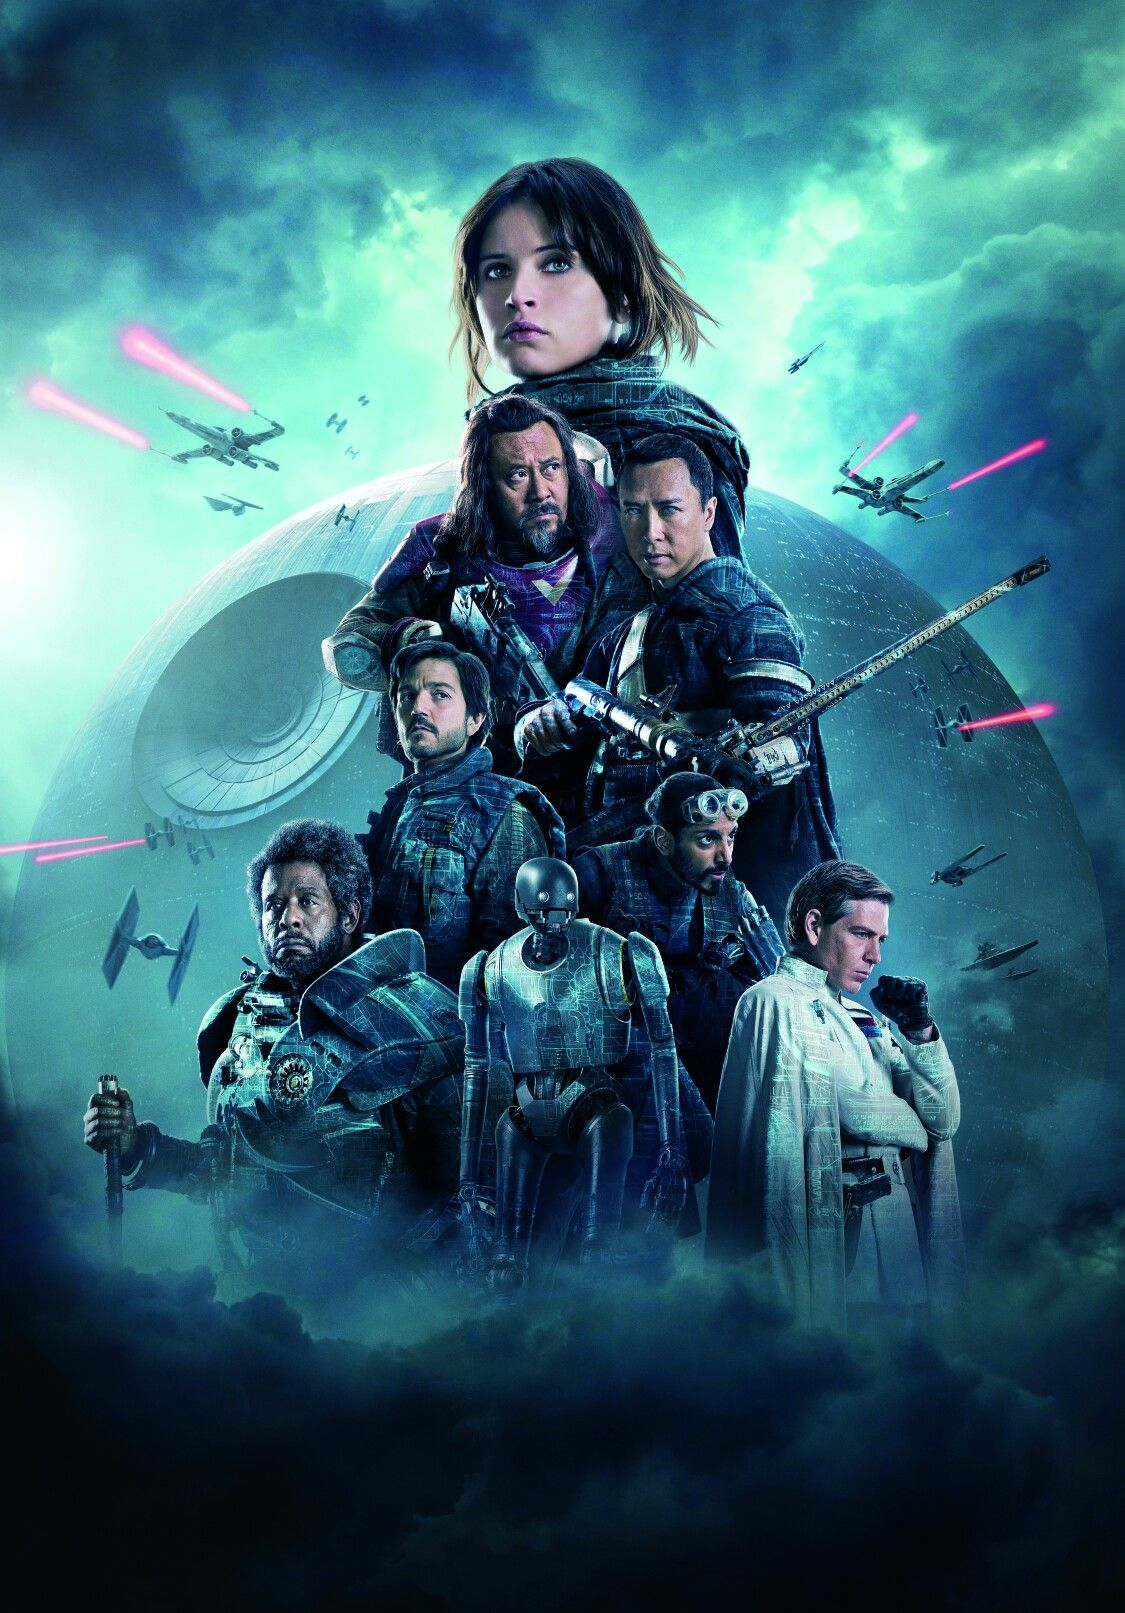 Rogue One A Star Wars Story Rogue One Star Wars Star Wars